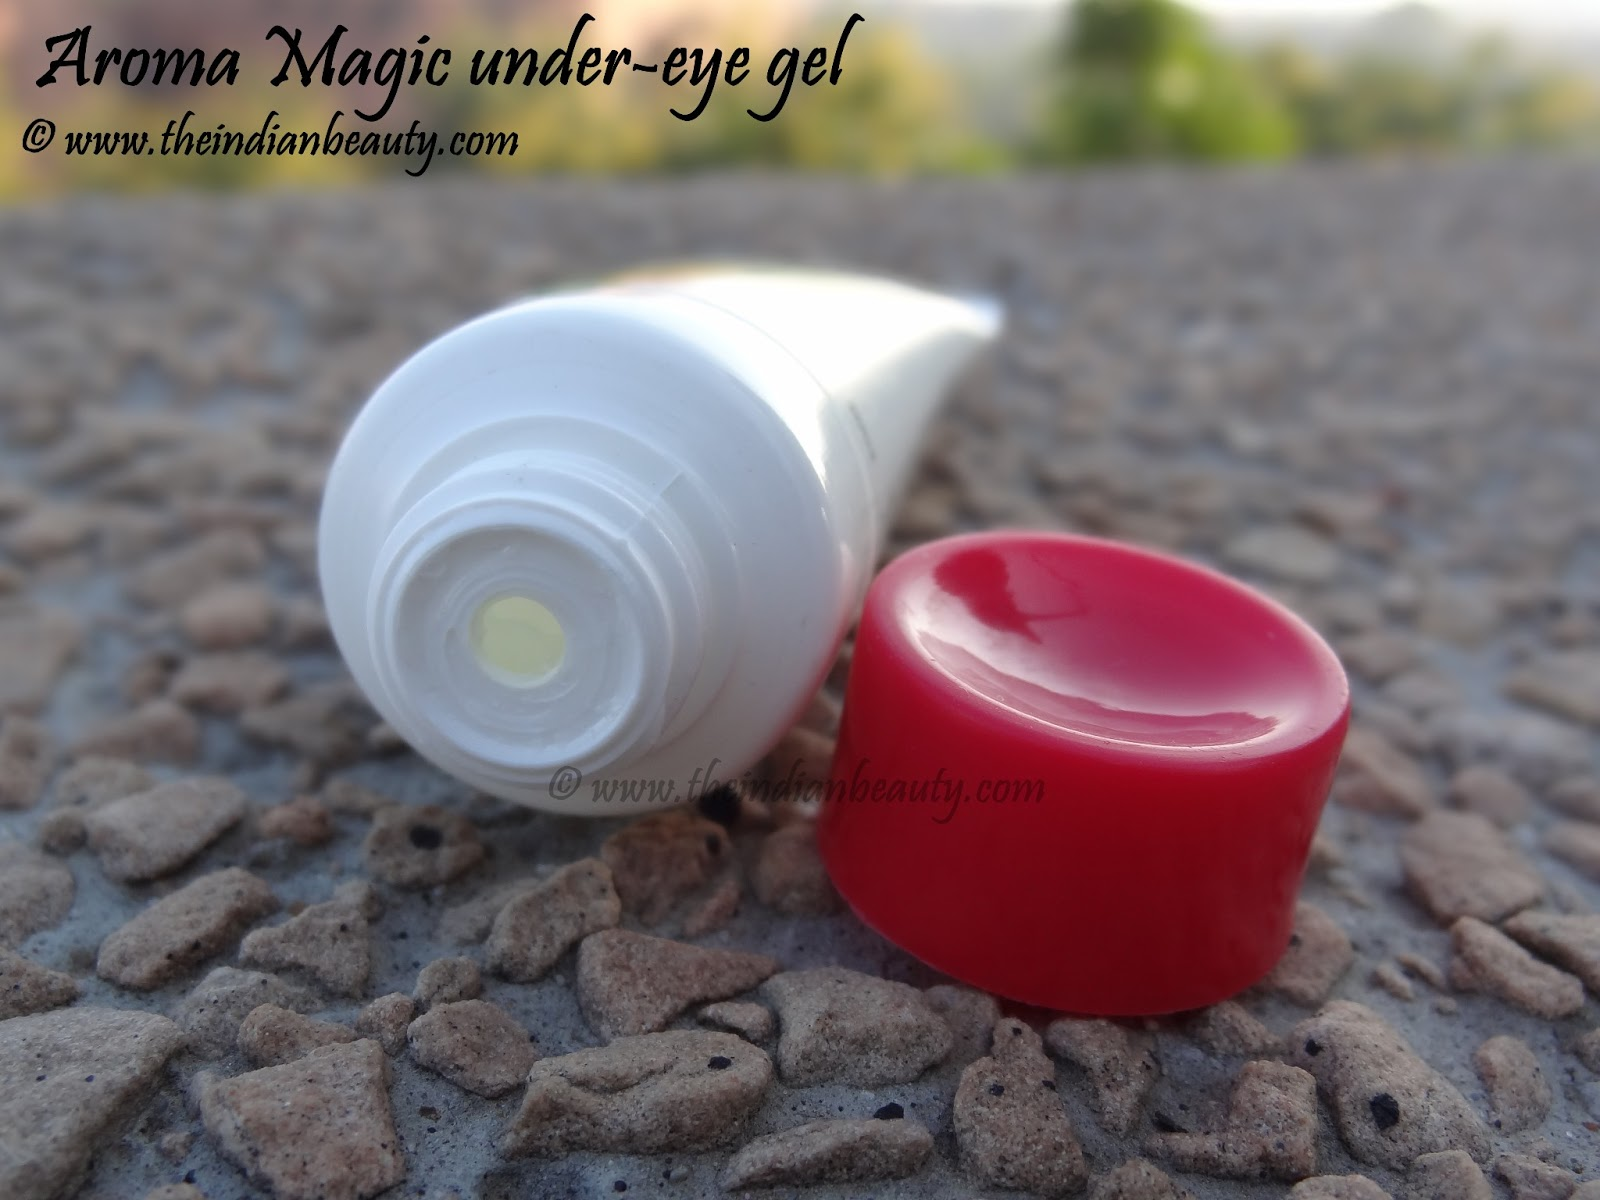 aroma magic under eye gel review price the indian